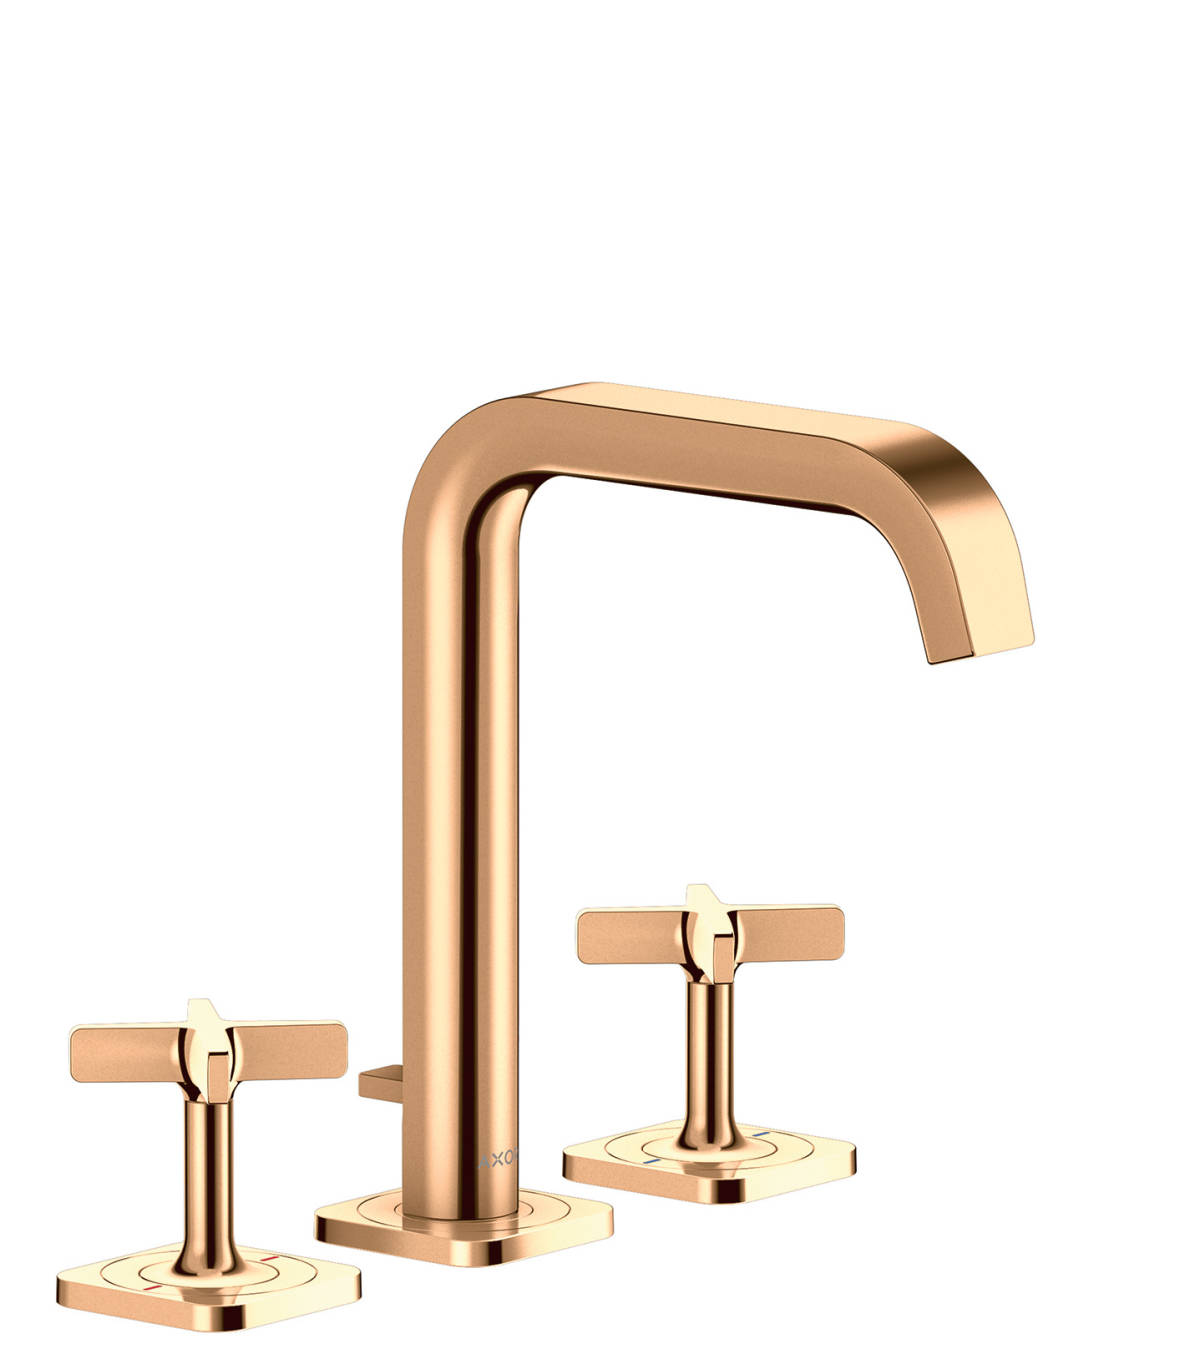 3-hole basin mixer 170 with escutcheons and pop-up waste set, Polished Bronze, 36108130